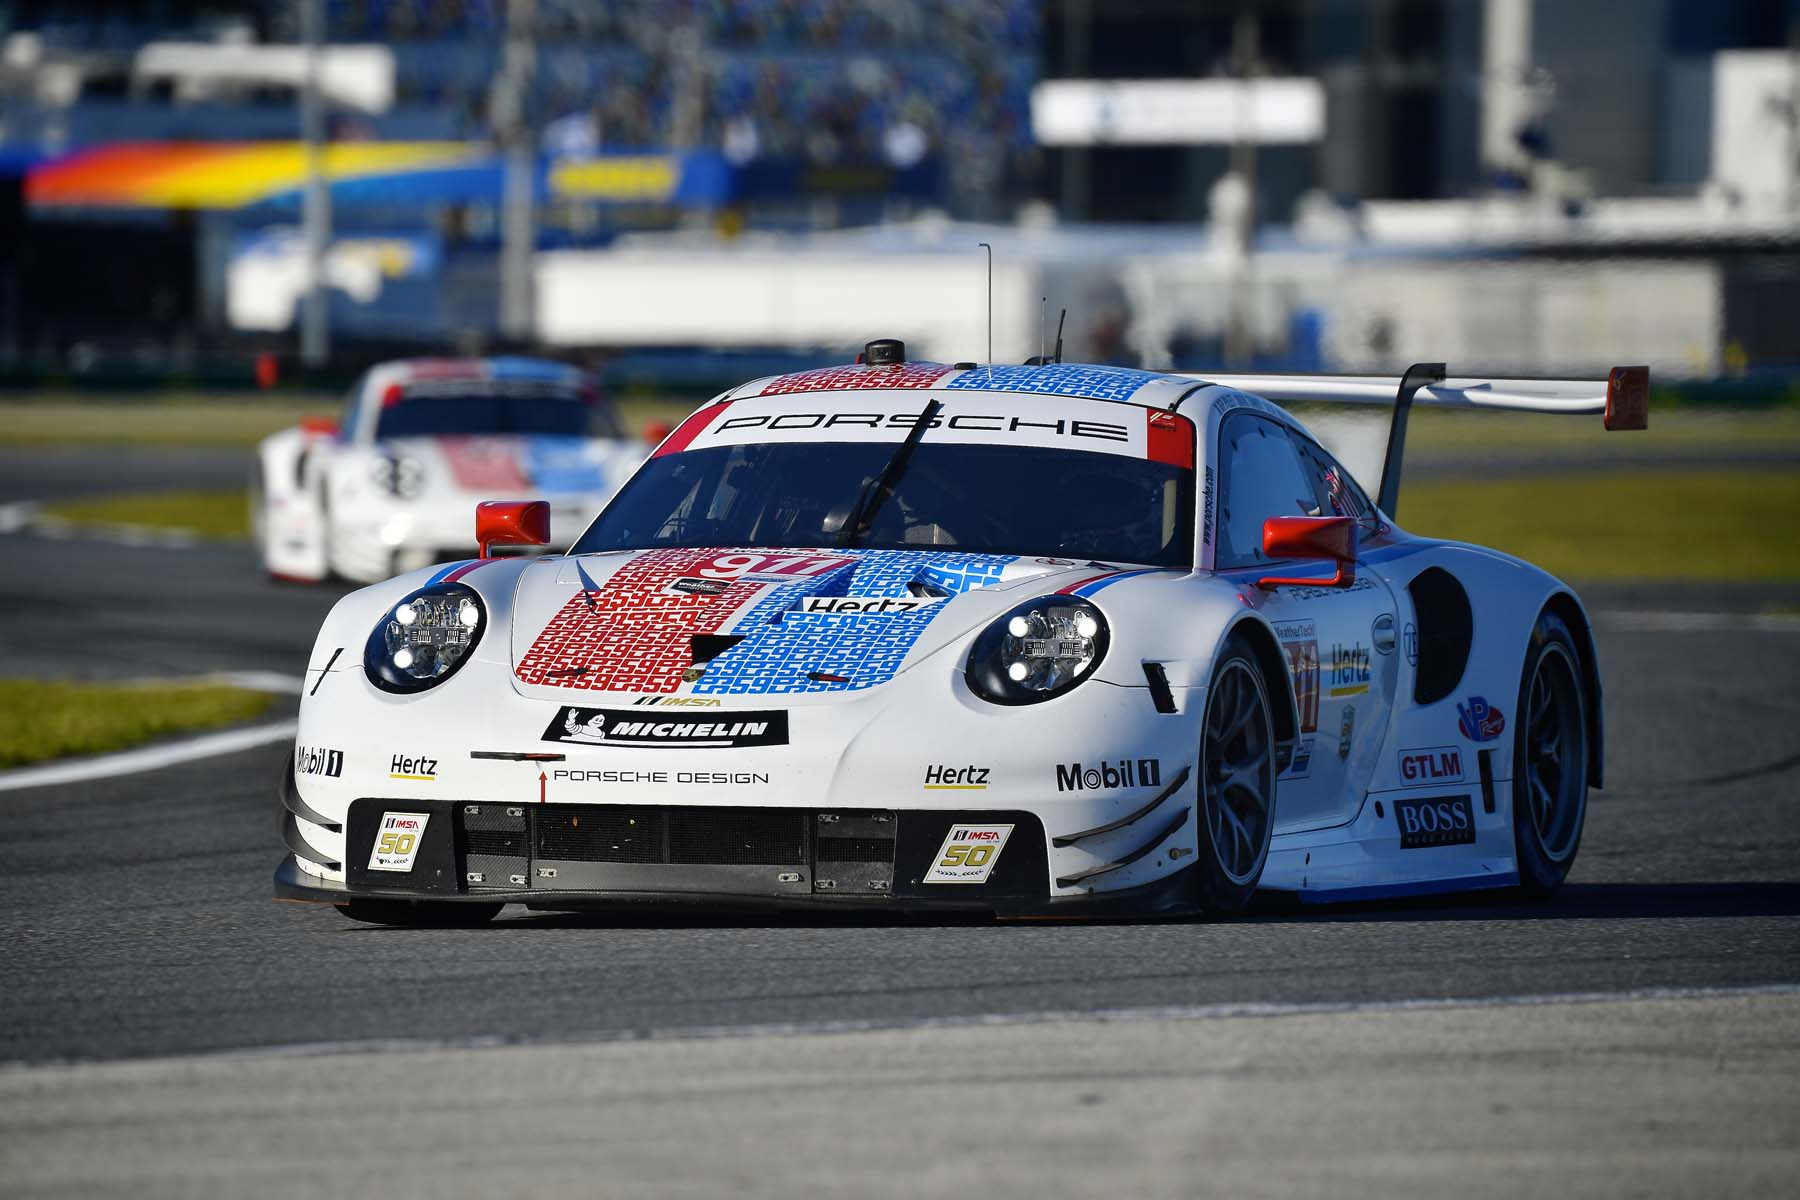 michelin and its partnership with north american endurance